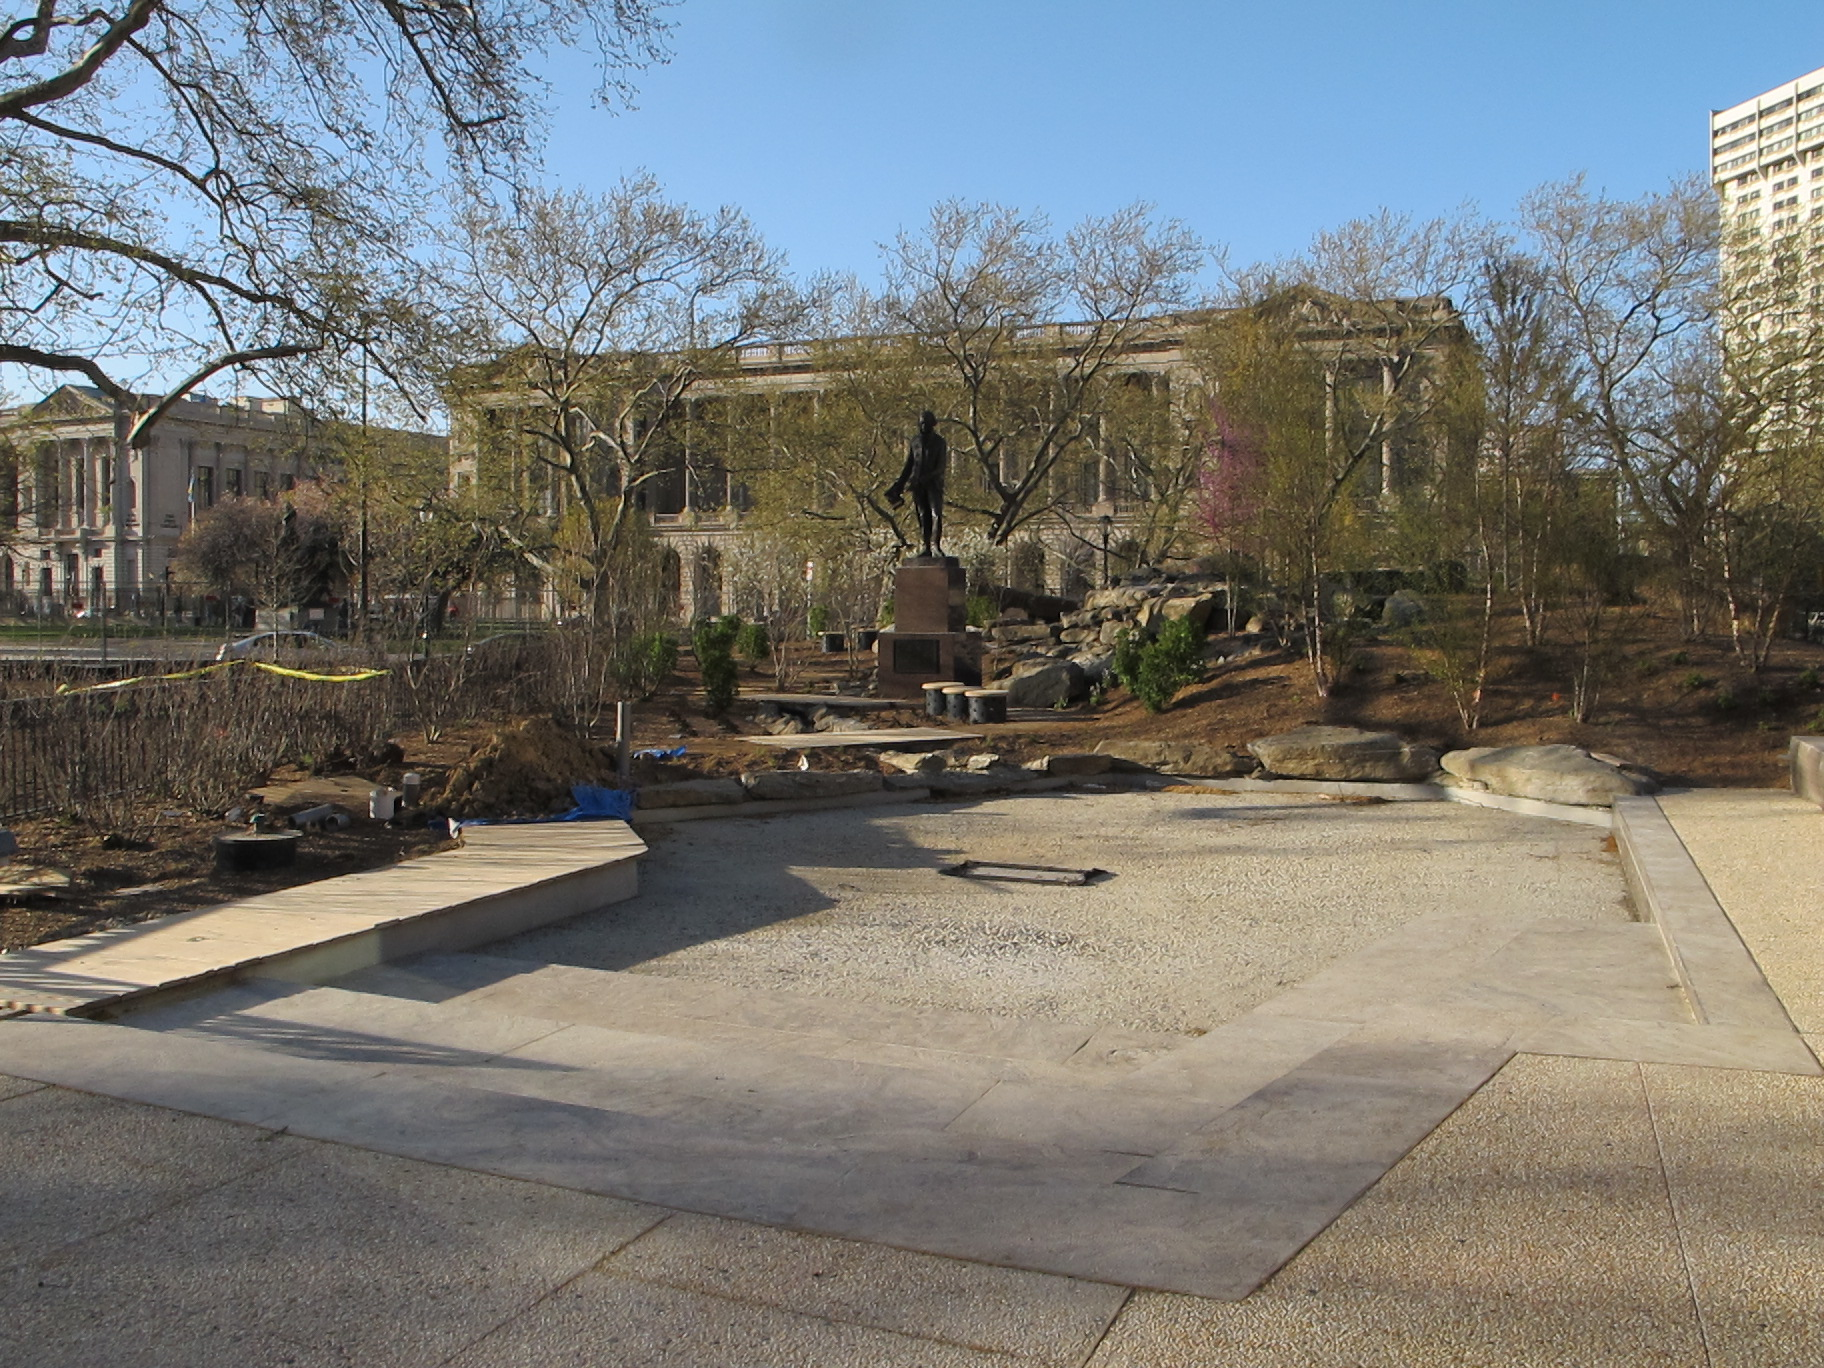 The children's discovery garden and boat pond in the new Sister Cities Park.